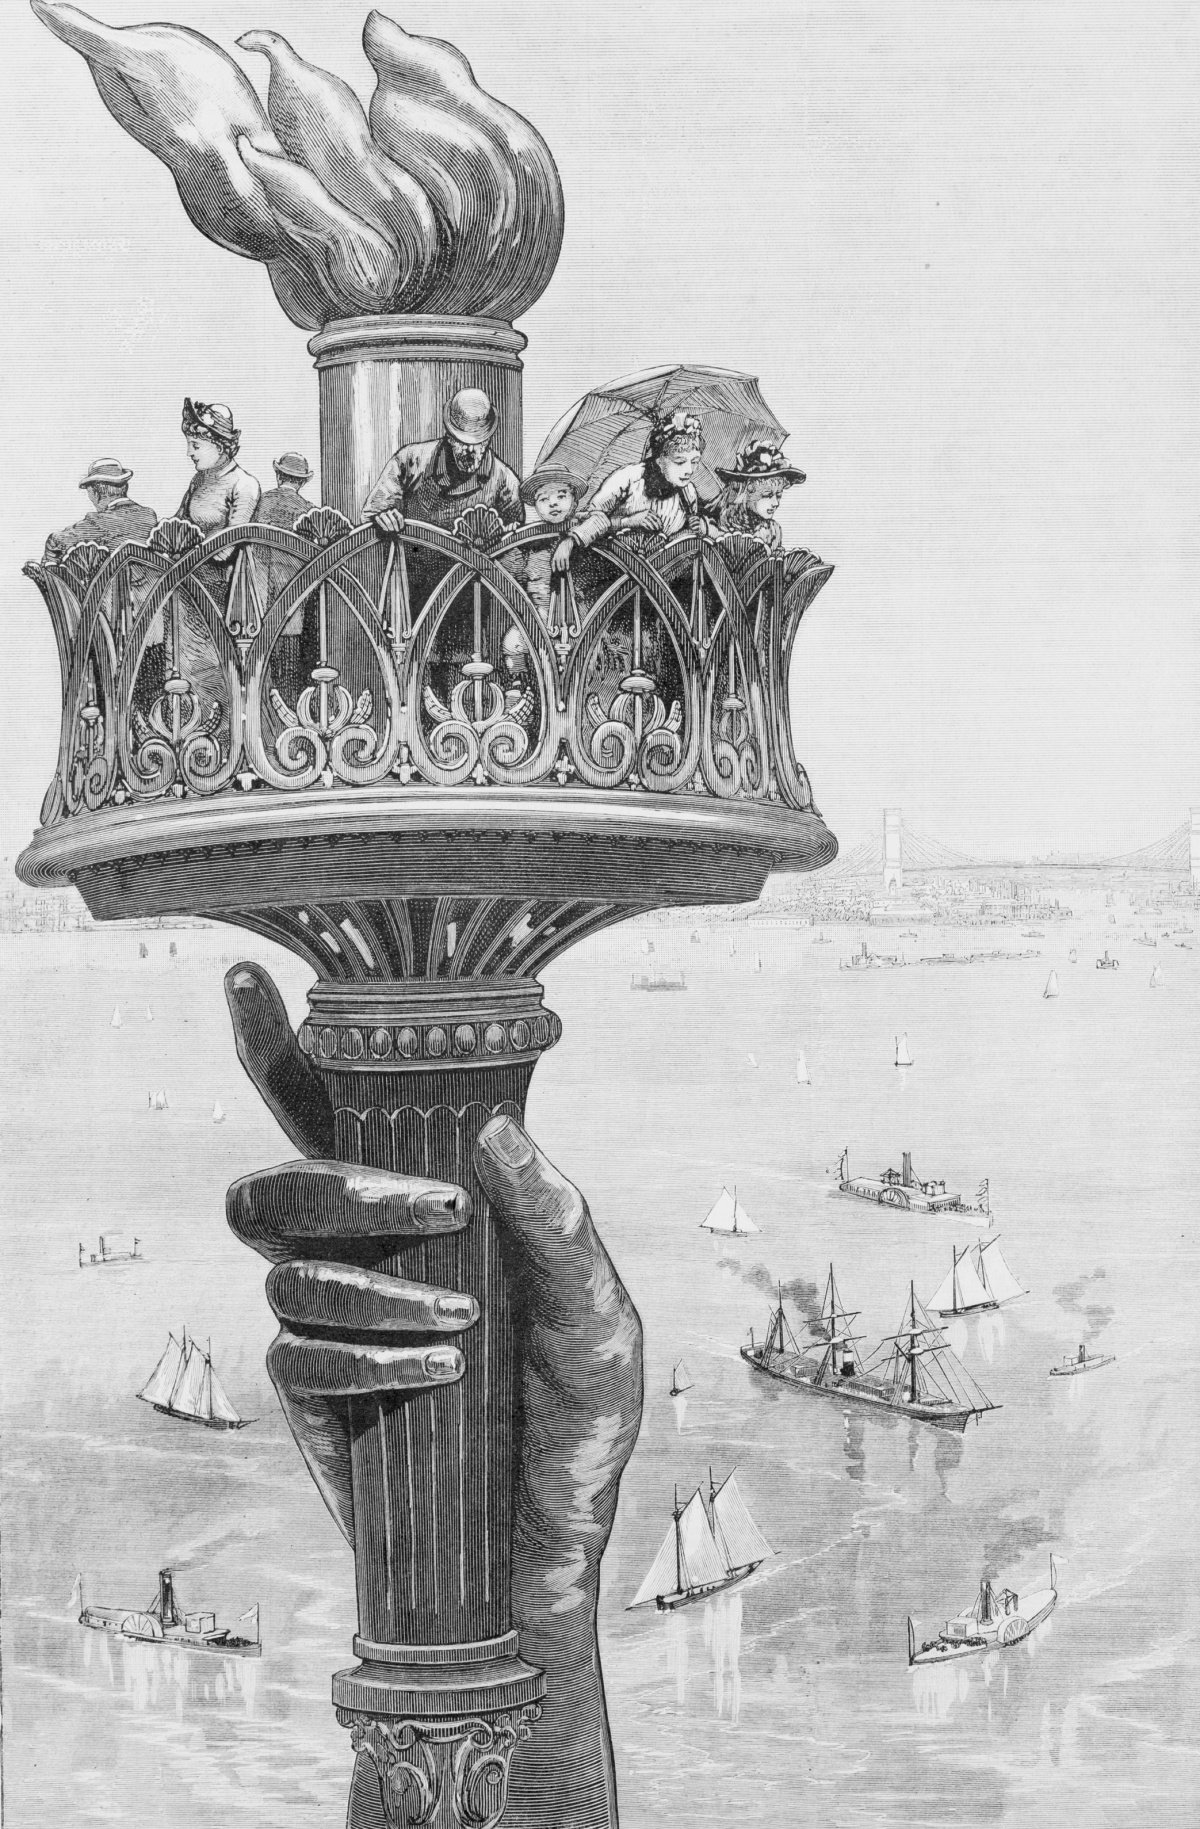 1885 illustration of visitors on the as-yet completed torch balcony